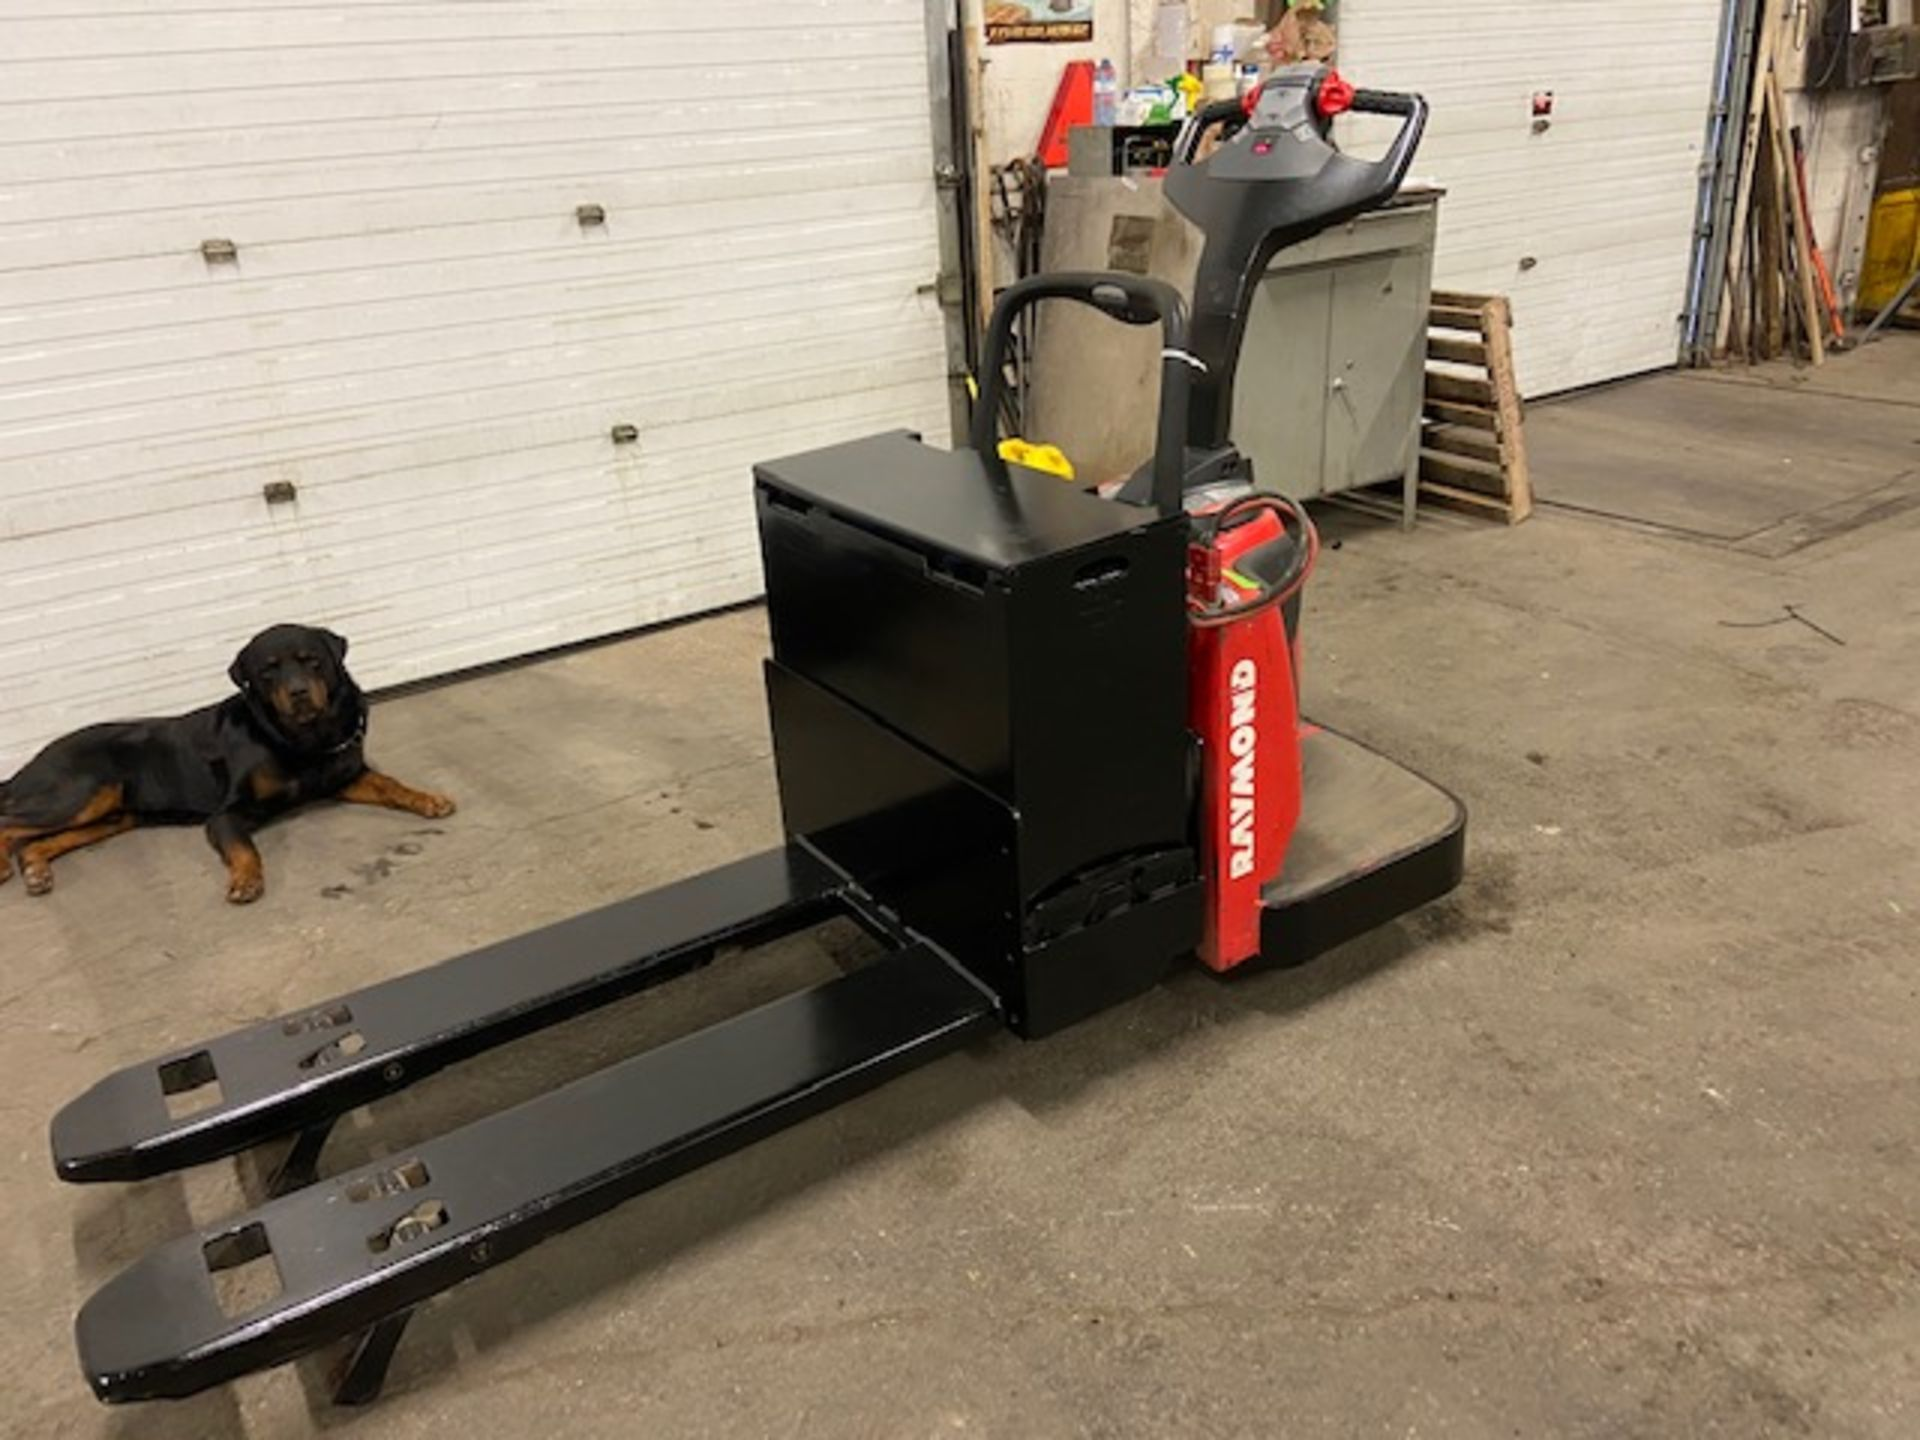 2014 Raymond Electric Ride on Powered Pallet Cart Lift 6000lbs capacity 4' Long with LOW HOURS